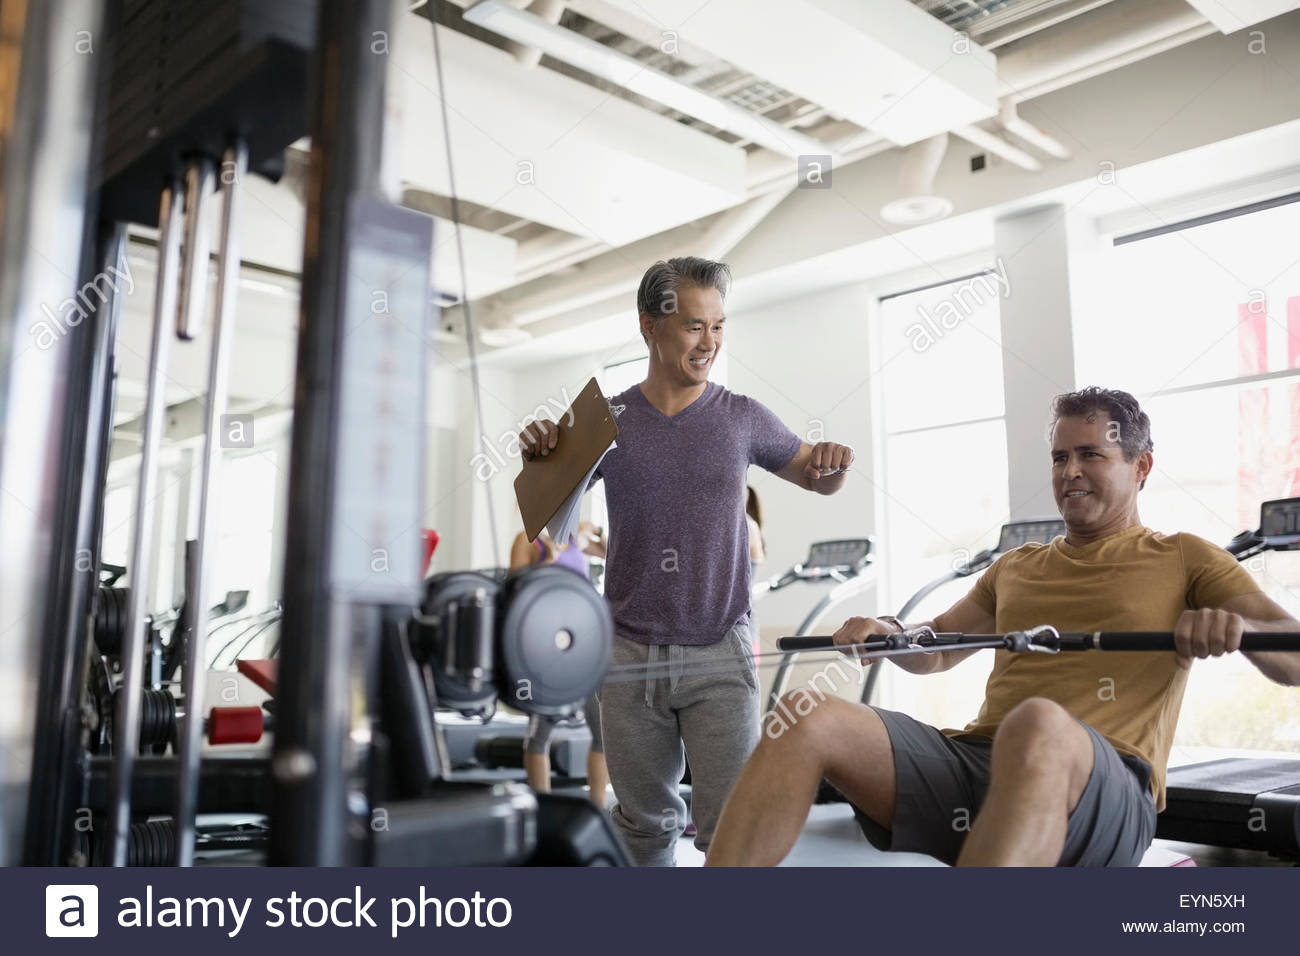 Personal trainer guiding man doing cable rows gym - Stock Image